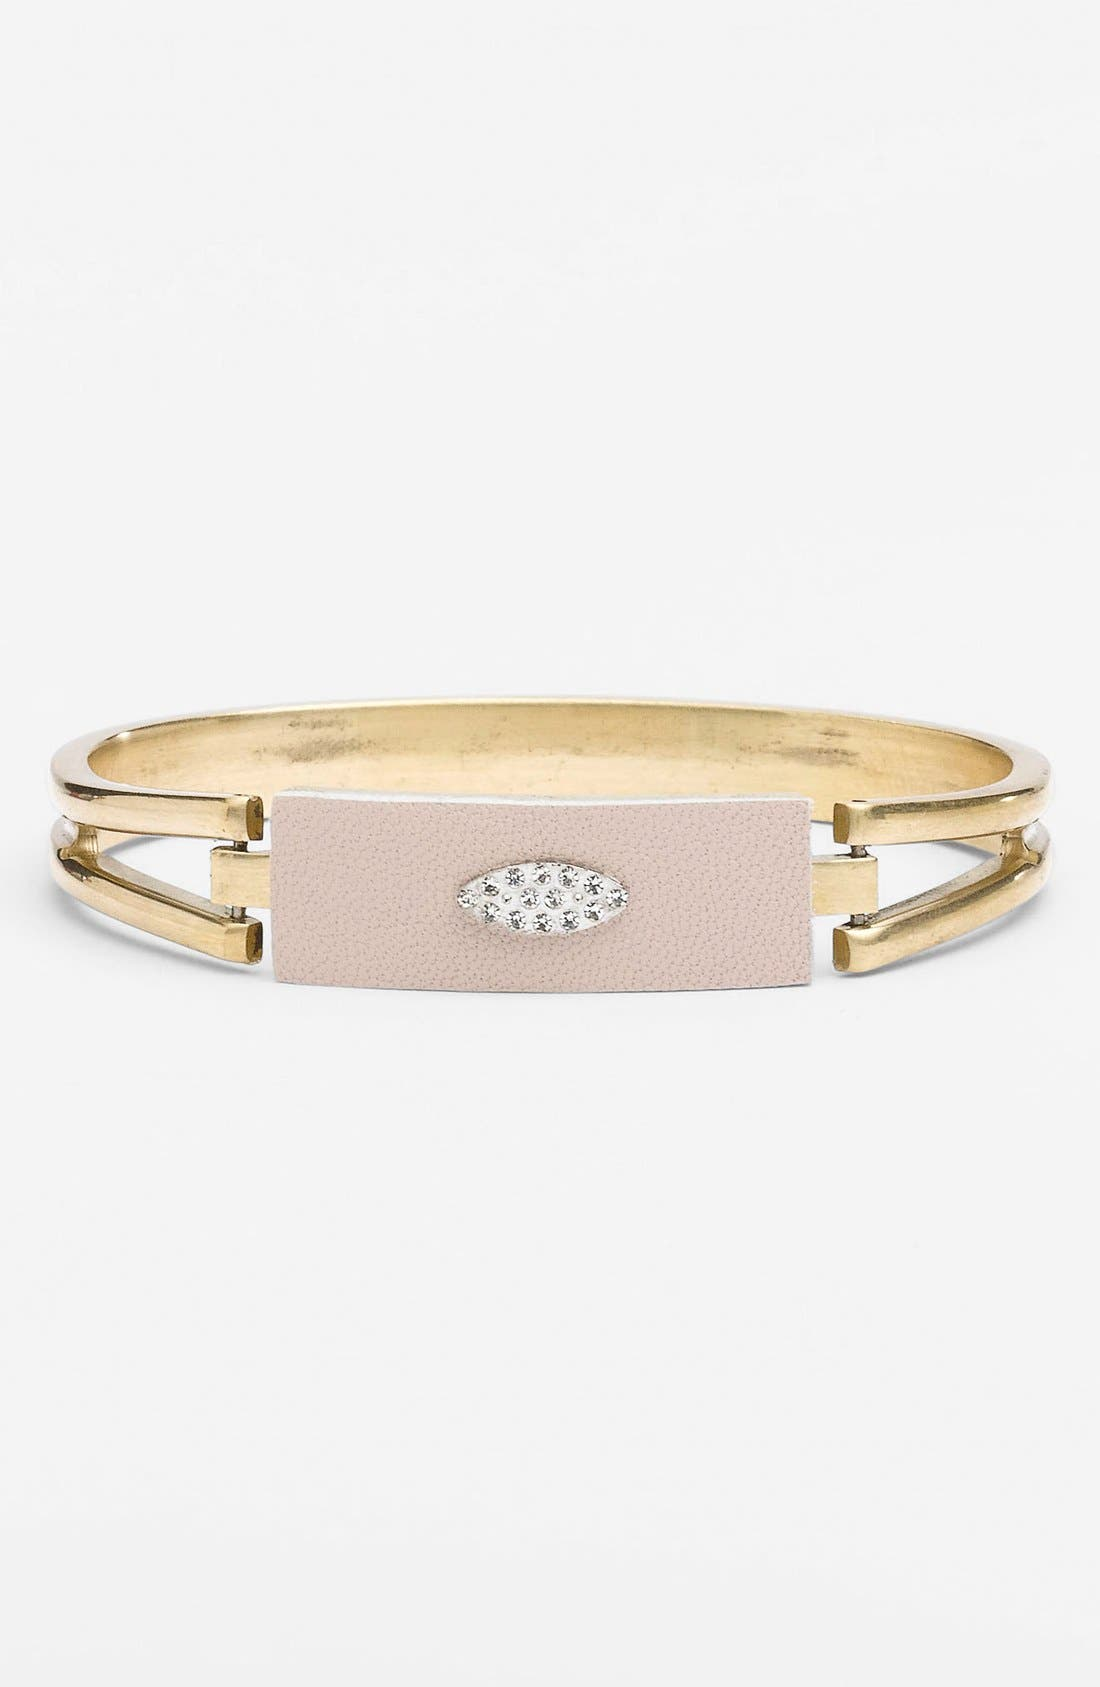 Main Image - Sandy Hyun Leather & Crystal Bangle